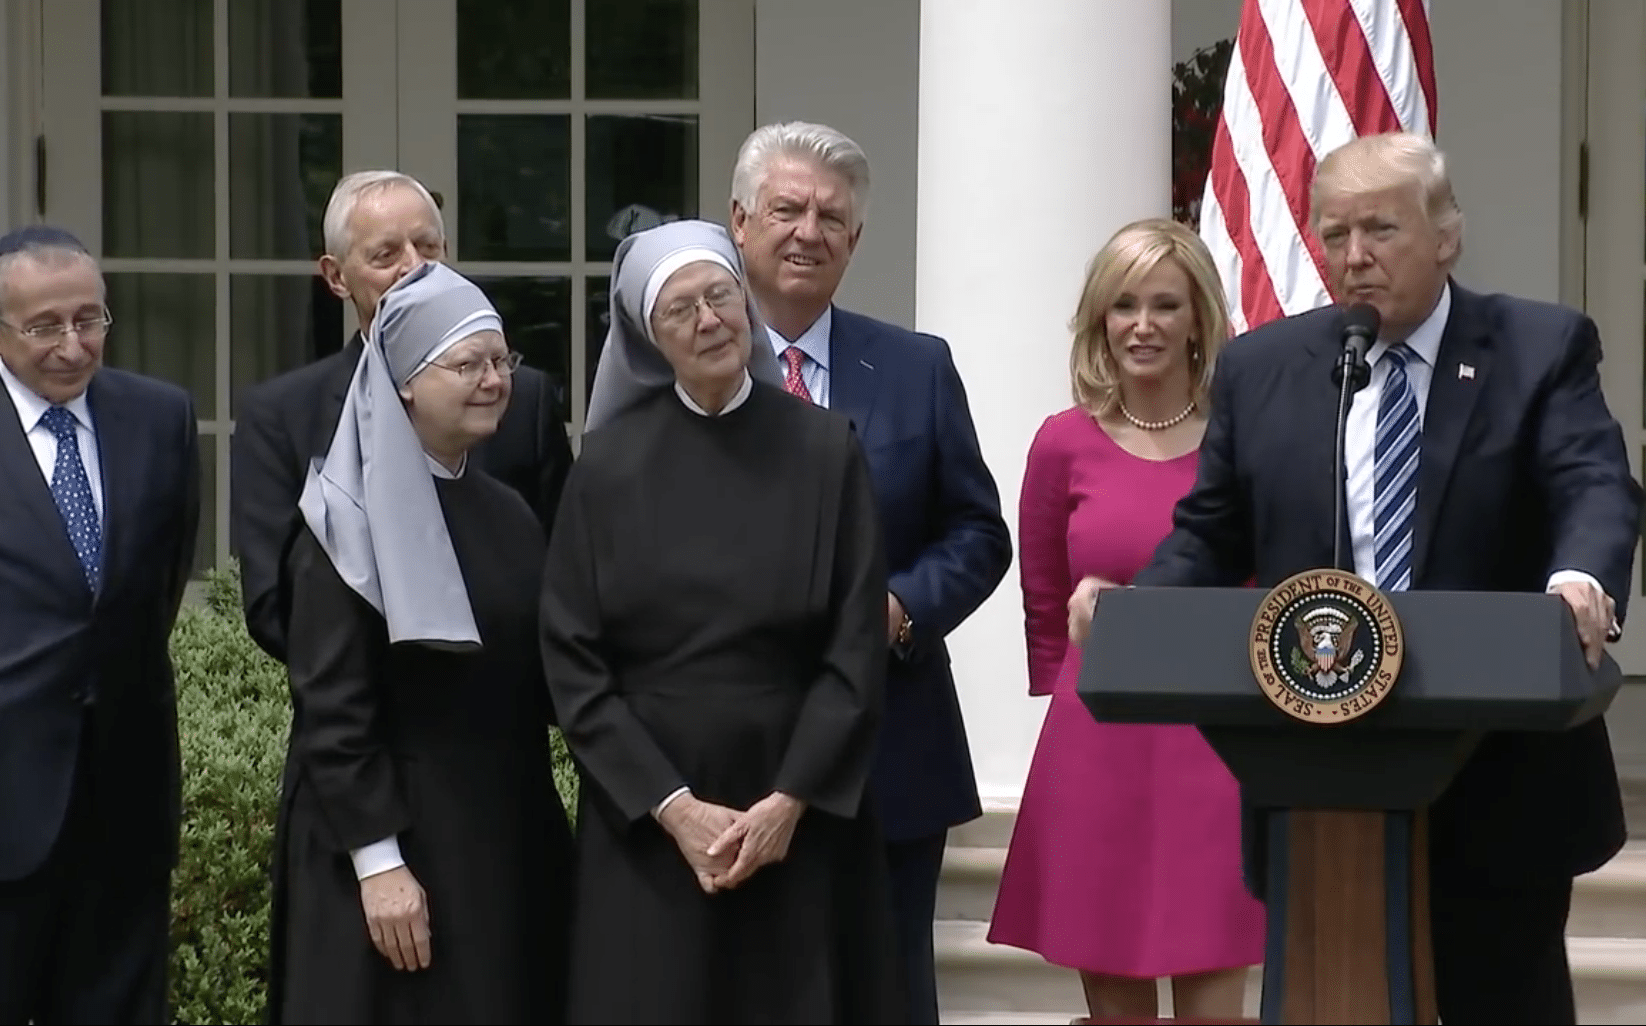 Trump administration draft rule rolls back birth-control coverage for religious employers